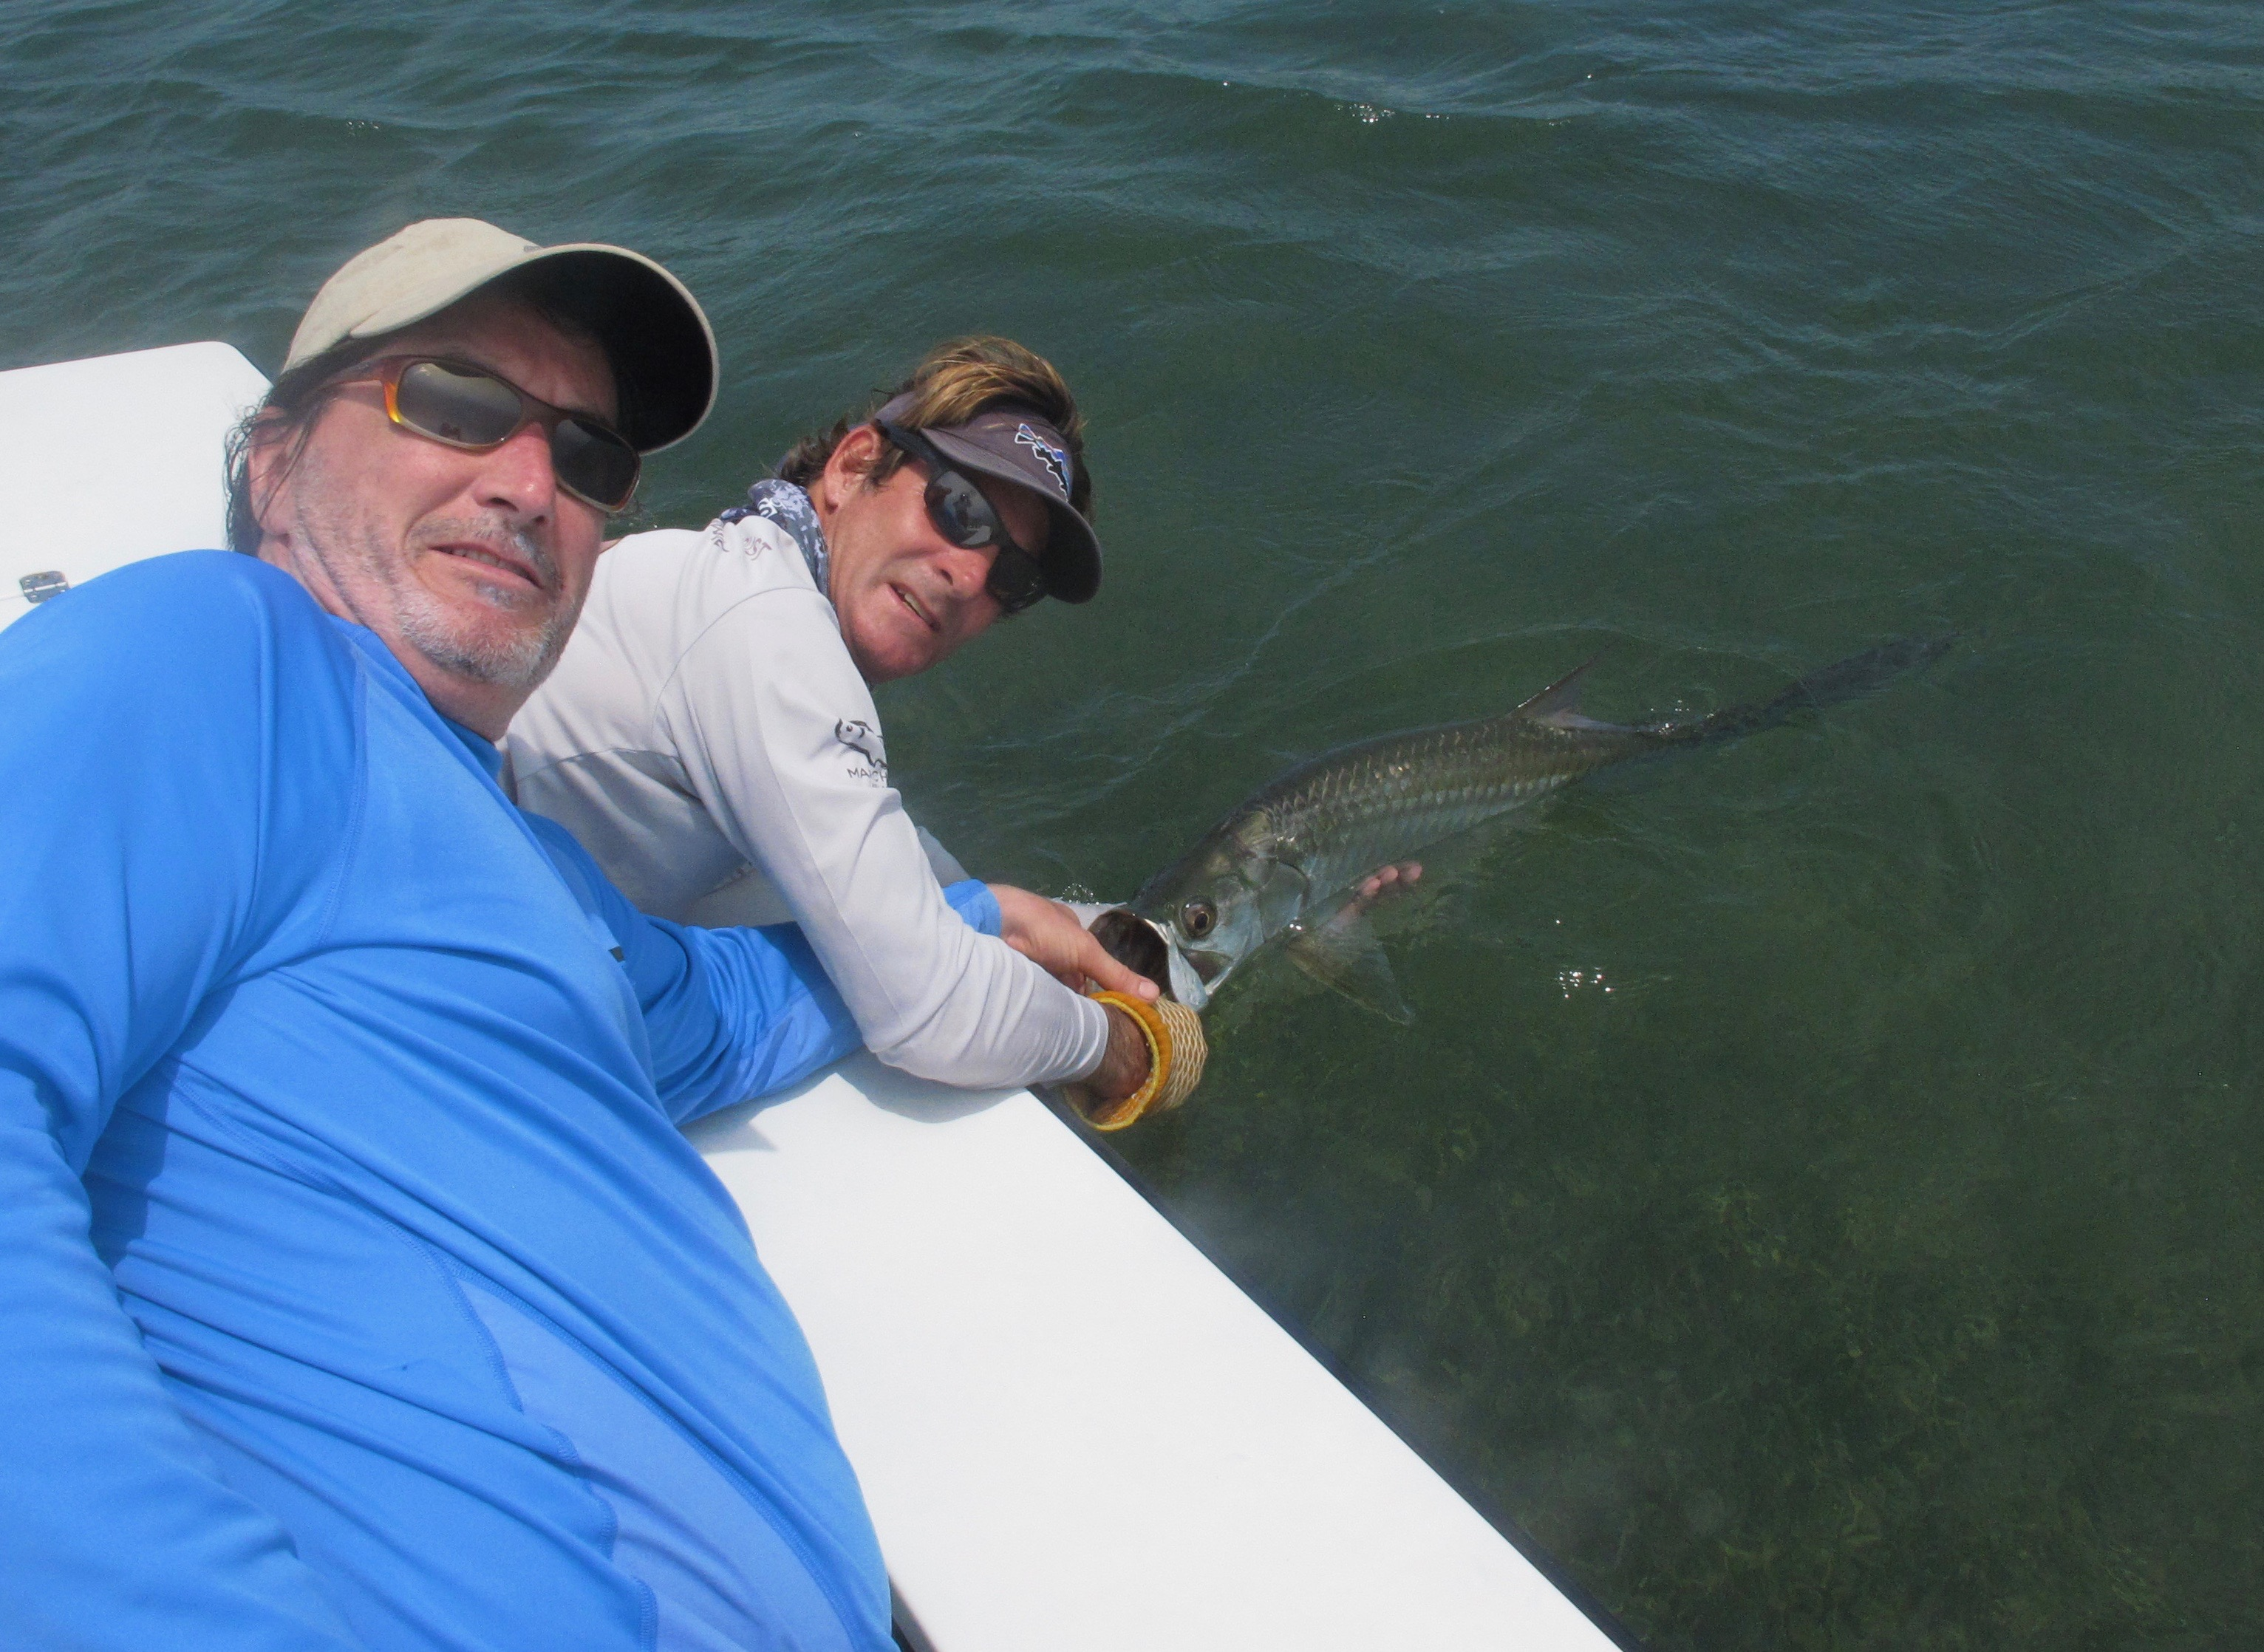 Key west flats fishing with capt mike o 39 brien fishing reports for Key west flats fishing